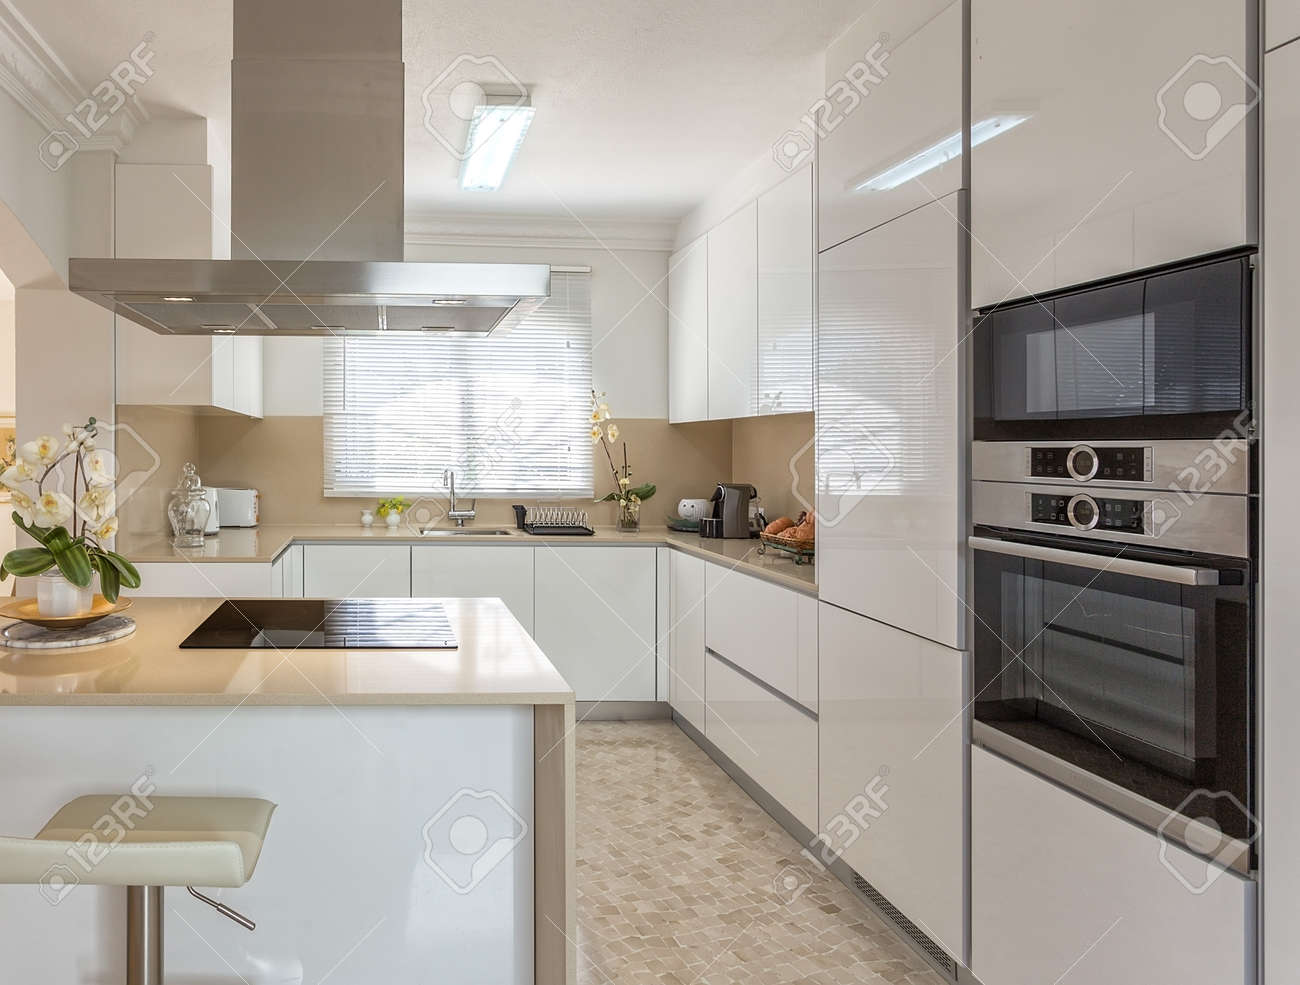 Modern kitchen with electric stove and appliances for use. - 126364422